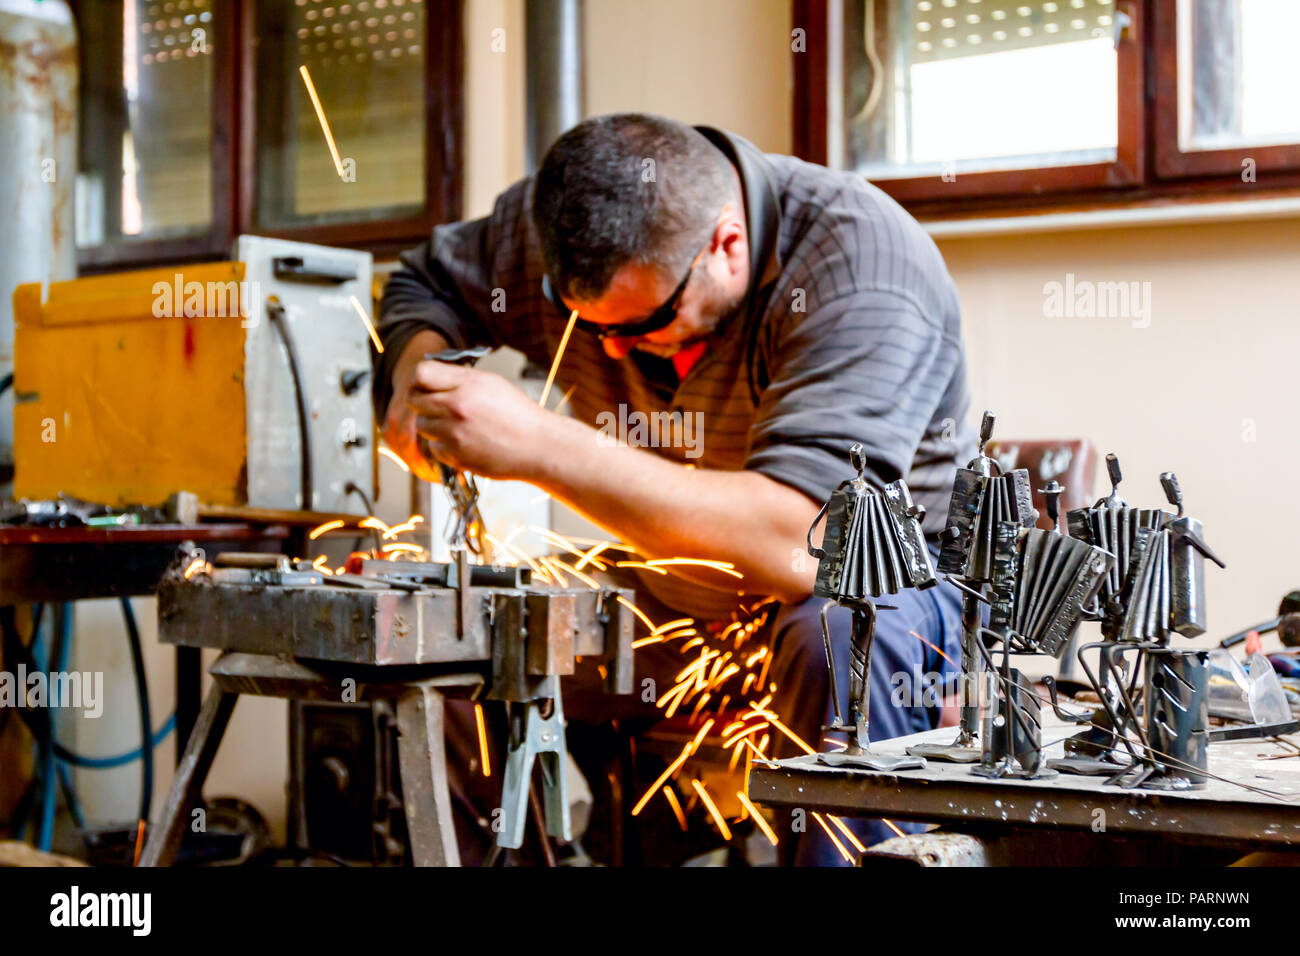 Sculptor is using arc welding to assembly metal sculpture barehanded with protective spectacles. - Stock Image